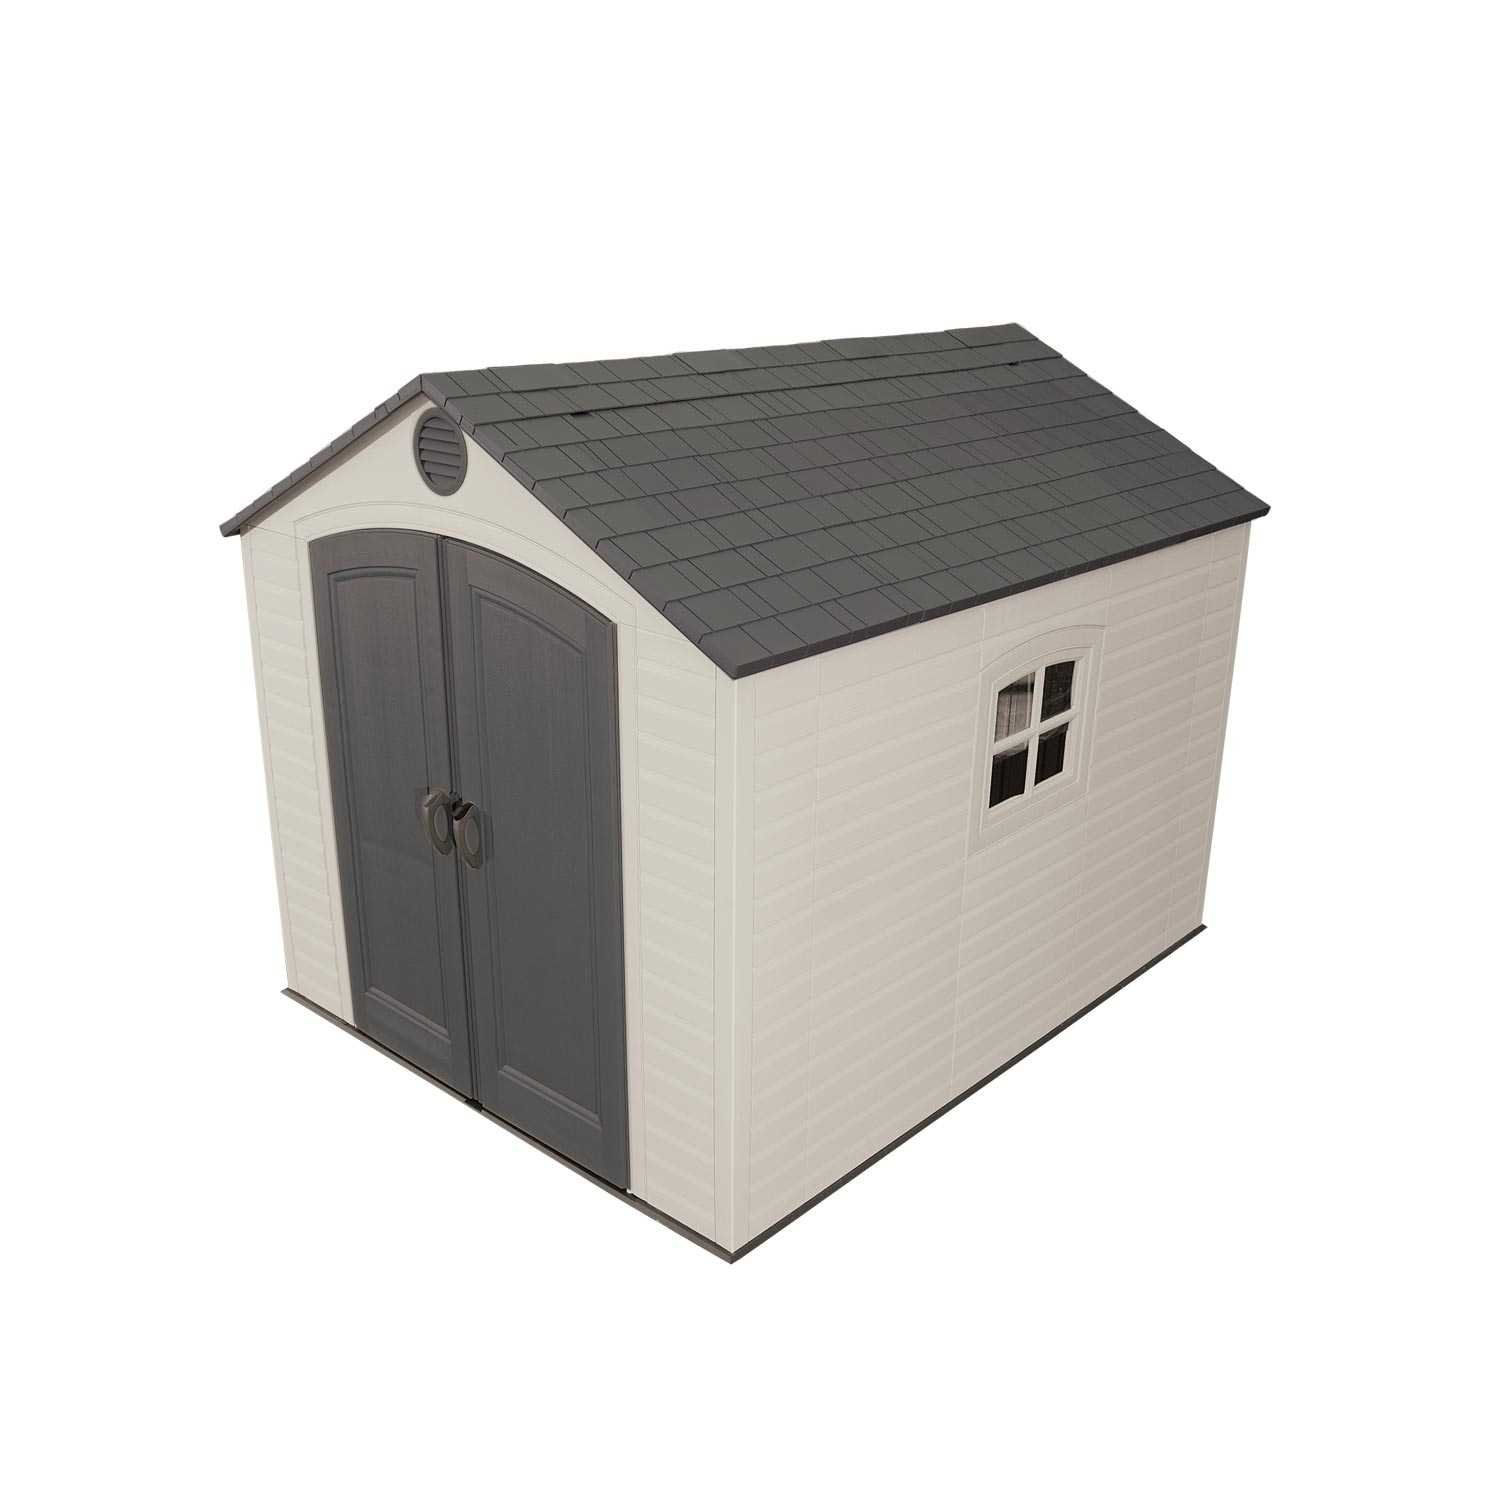 outdoor pl for vinyl storage shop com common x lowes sheds display at shed outdoors reviews resin gable ft product